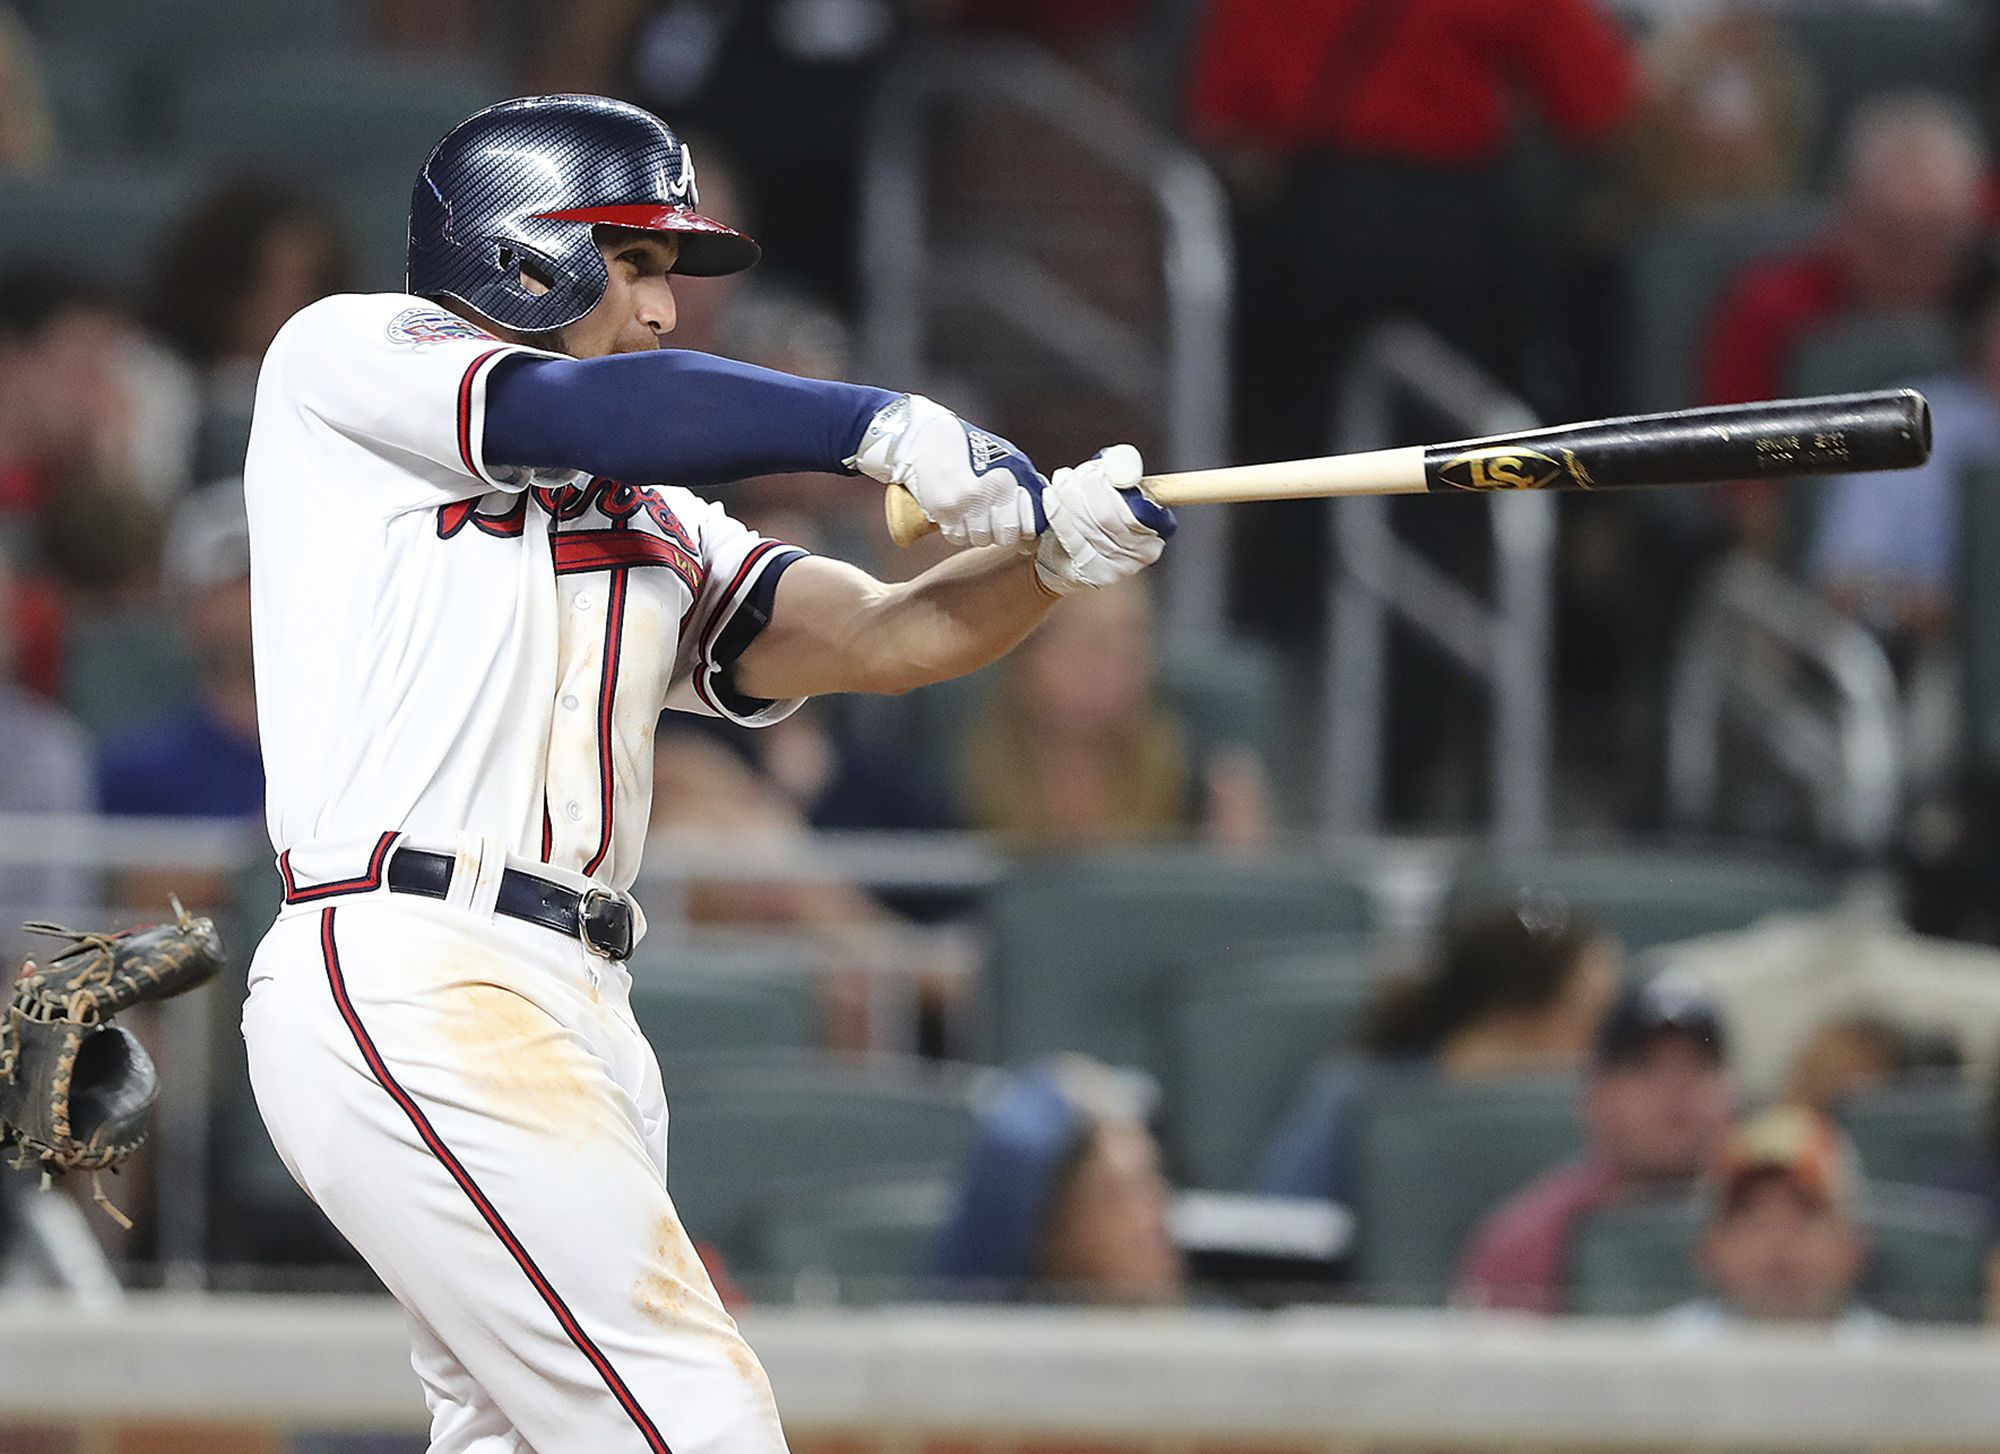 Atlanta Braves Ender Inciarte Hits The First Home Run For In SunTrust Park A Lead Over San Diego Padres During Sixth Inning